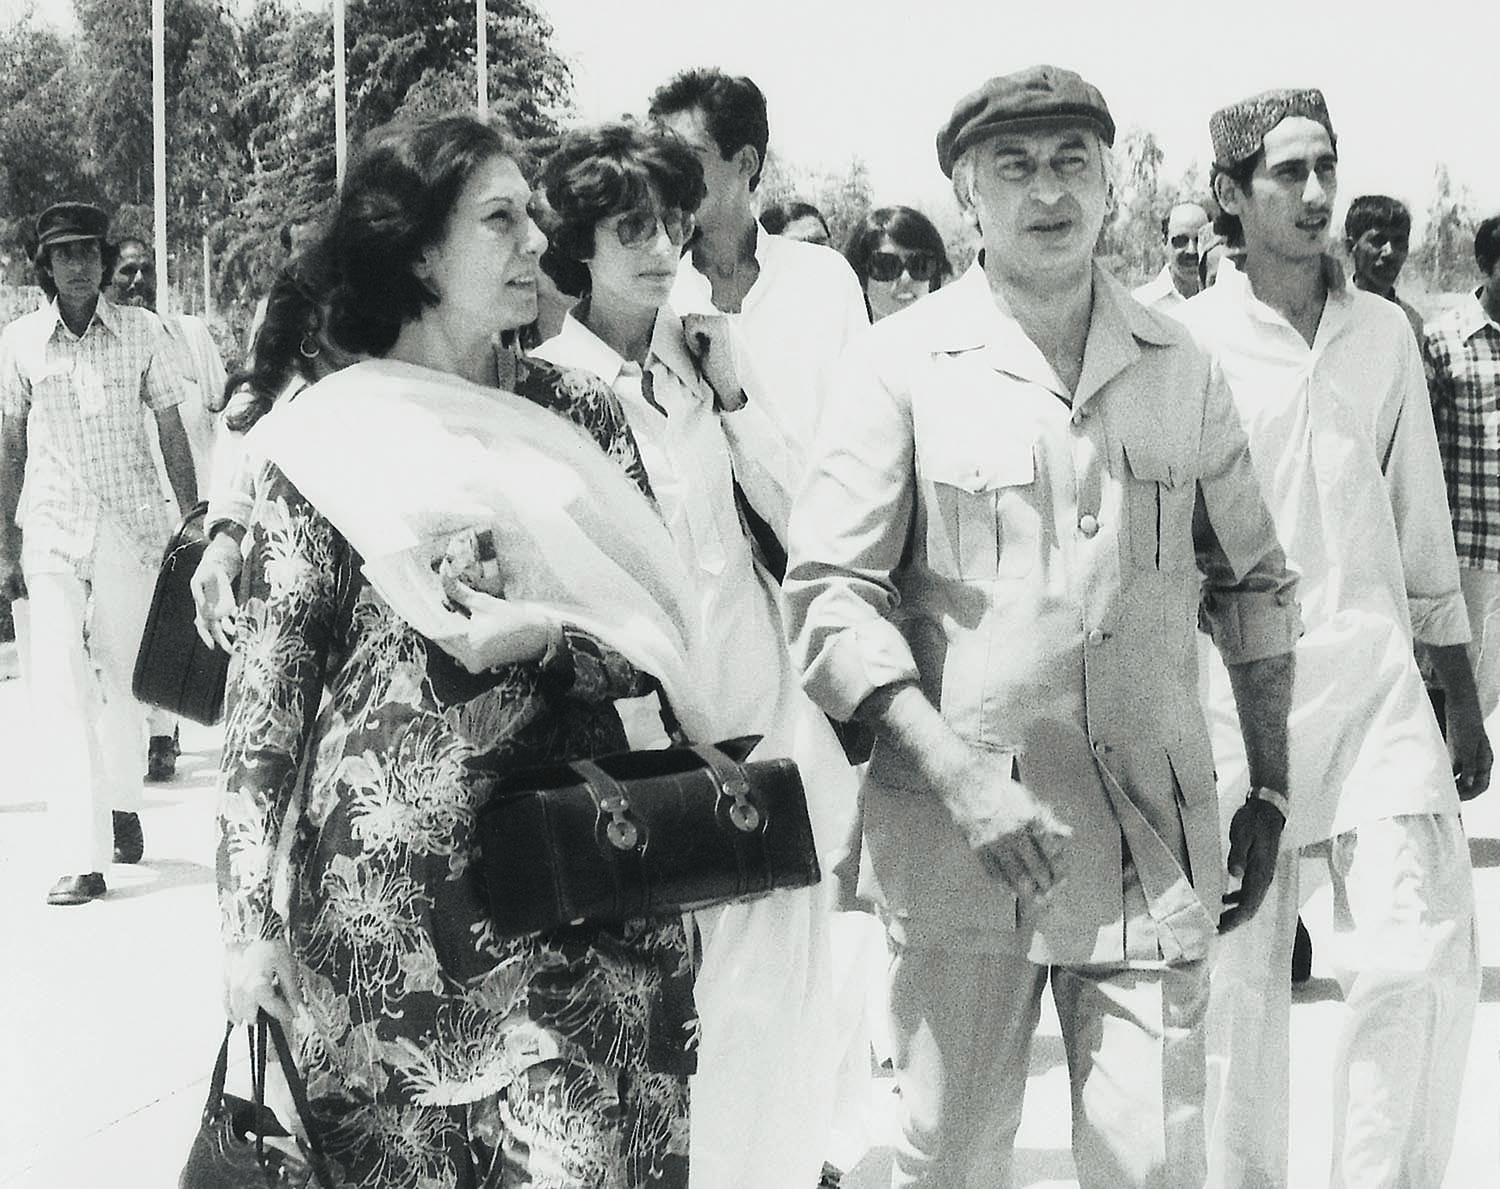 A rare photograph of the Bhutto Family in its prime. Seen from from left to right are Begum Nusrat Bhutto, Benazir Bhutto, Murtaza Bhutto (looking leftwards), Zulfikar Ali Bhutto and Shahnawaz Bhutto. | Photo: Dawn / White Star Archives